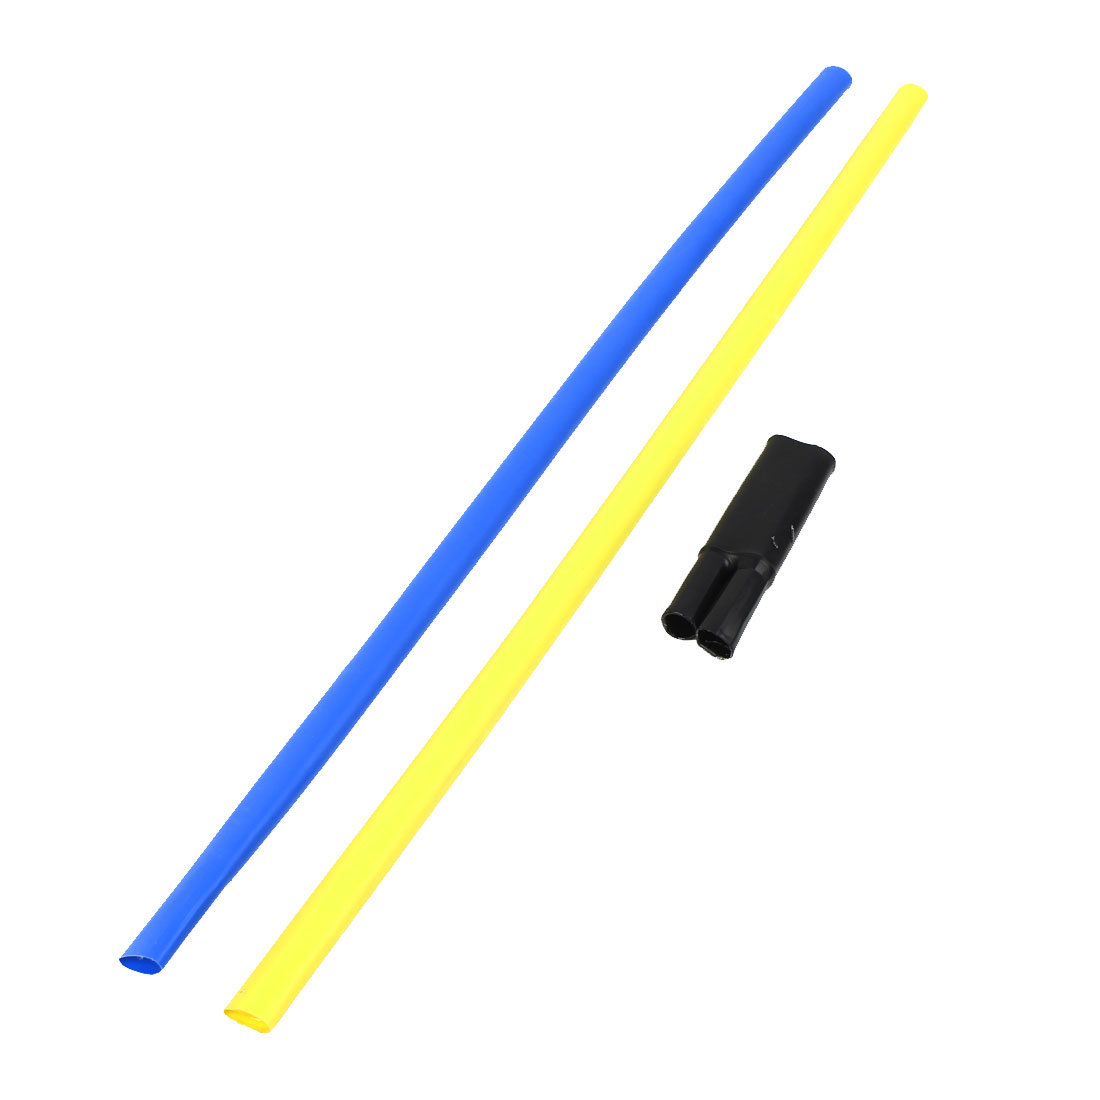 2Pcs Blue Yellow Polyolefin 15mm Dia 10-16mm2 Cable Heat Shrink Cover Wiring Shrinkable Tube 0.6M w Breakout Boot